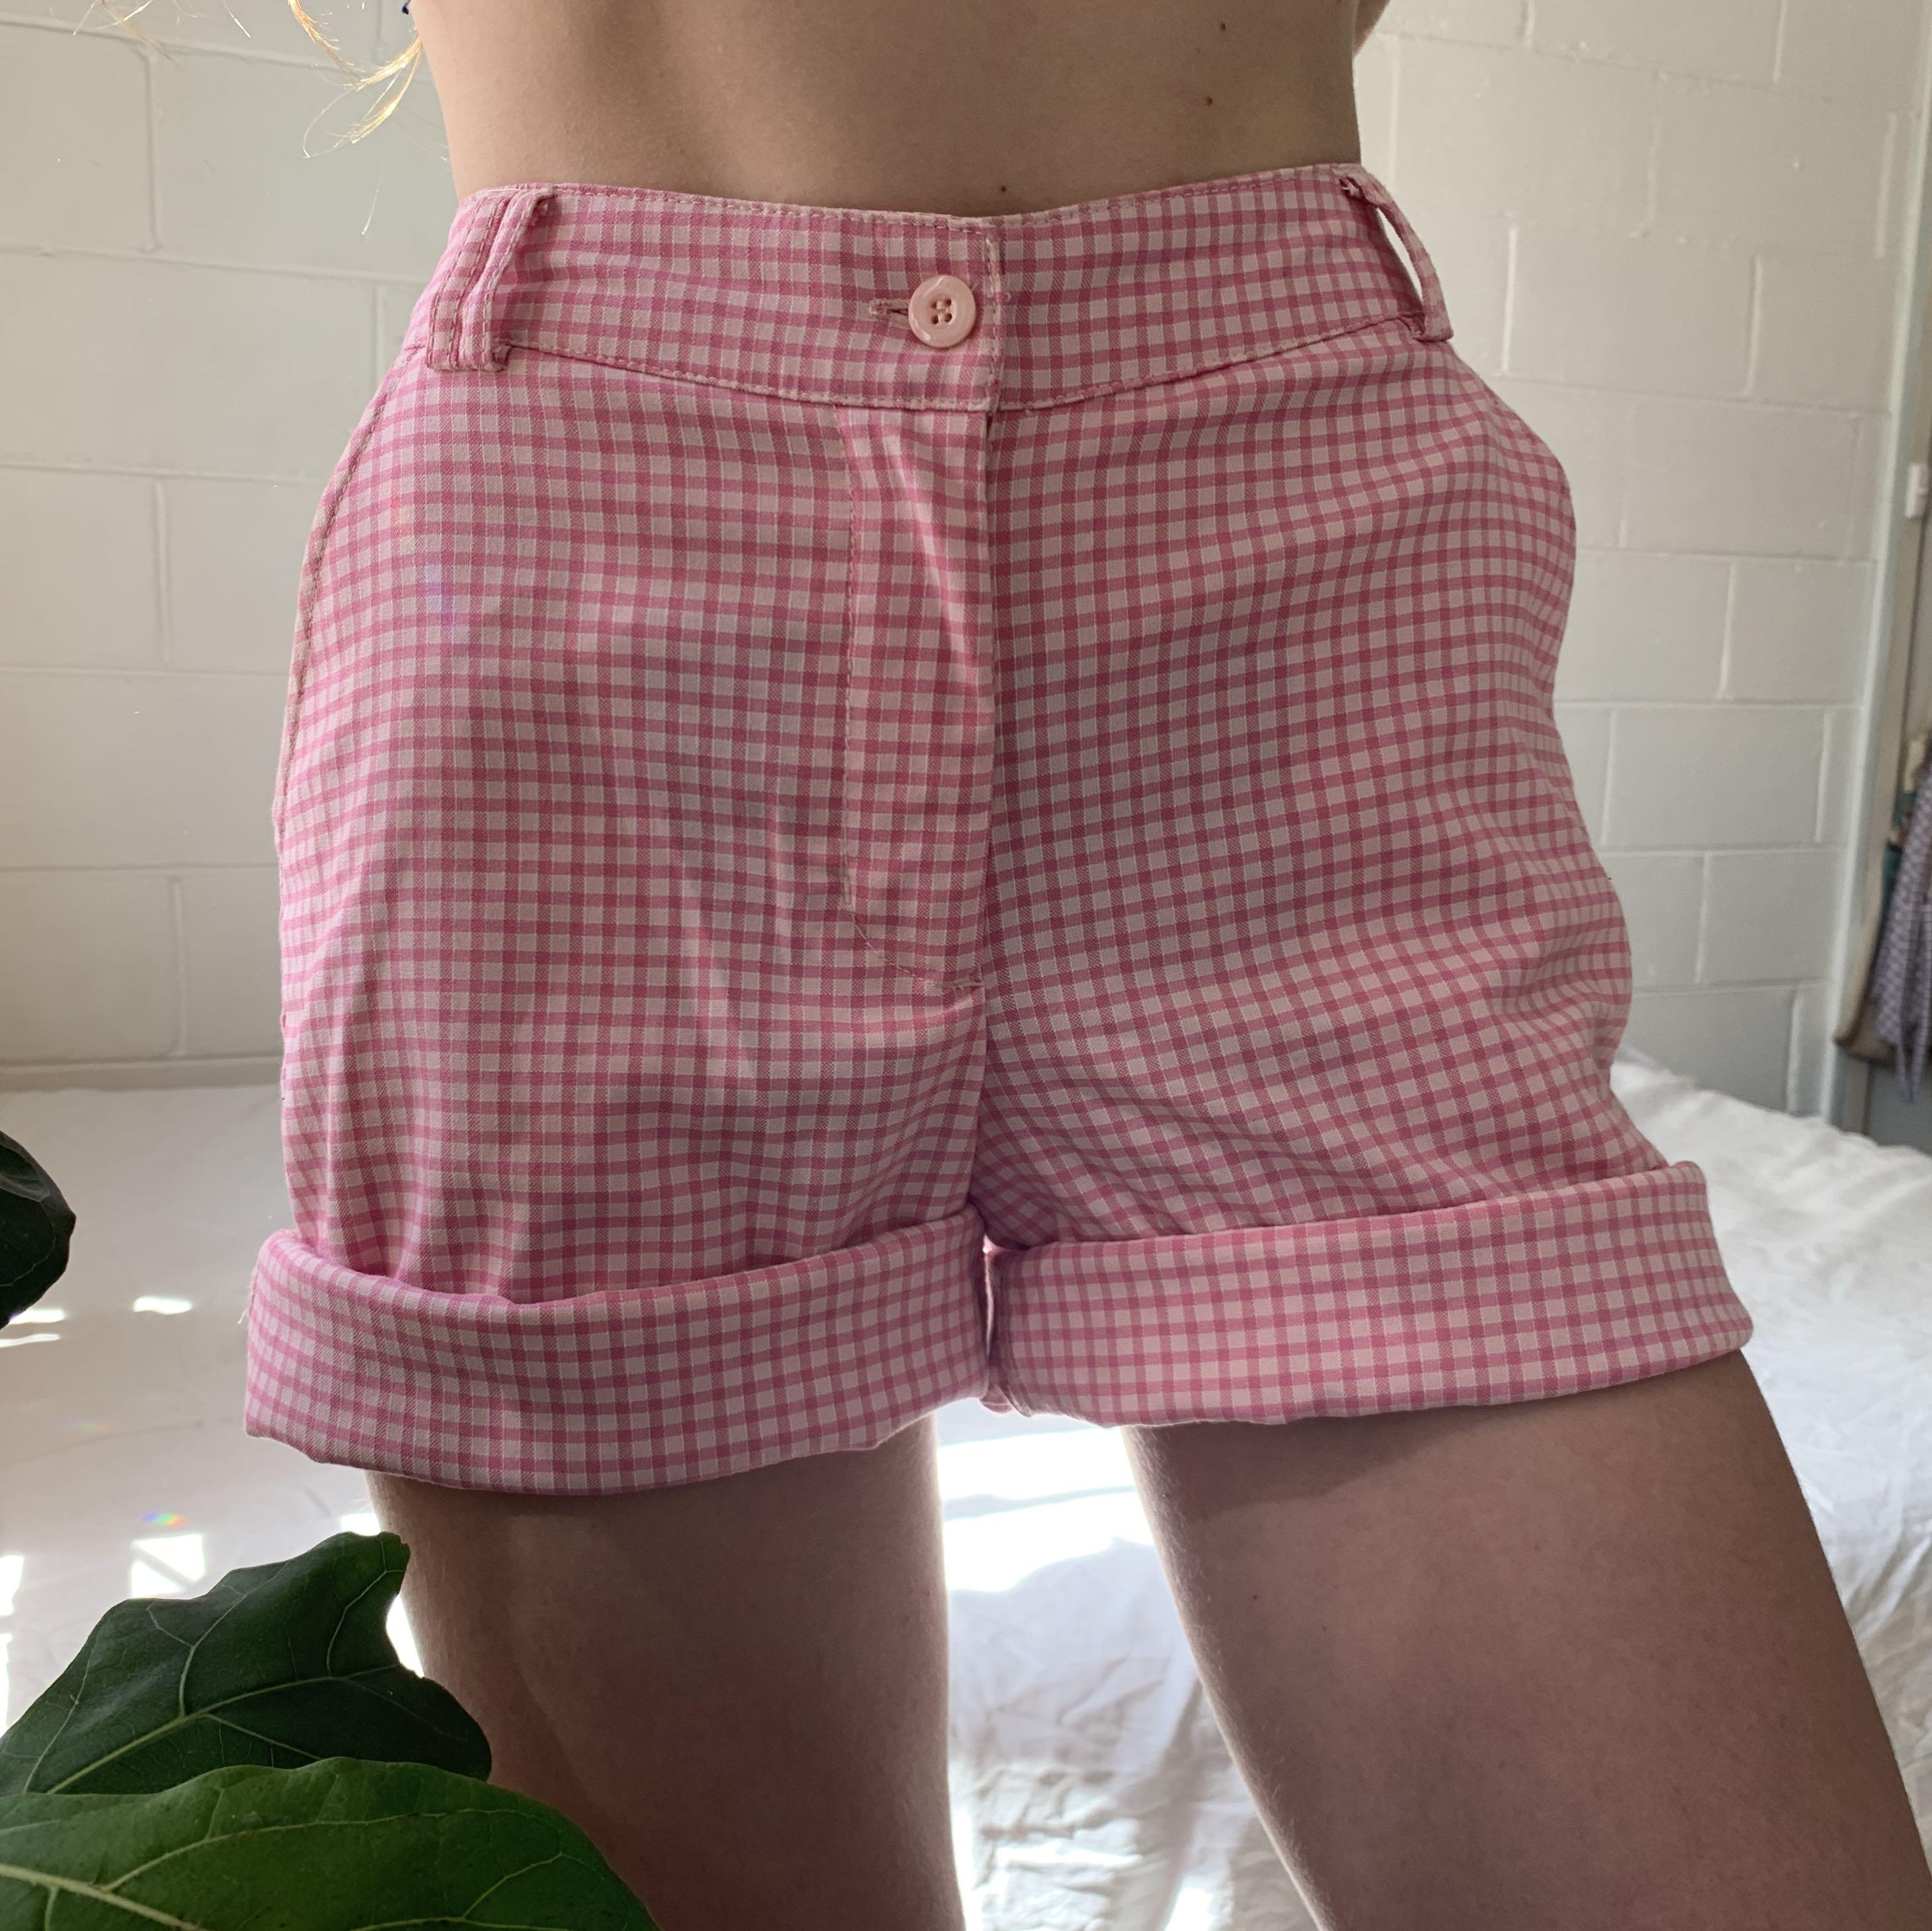 cutest vintage high waisted pink checks/ gingham shorts